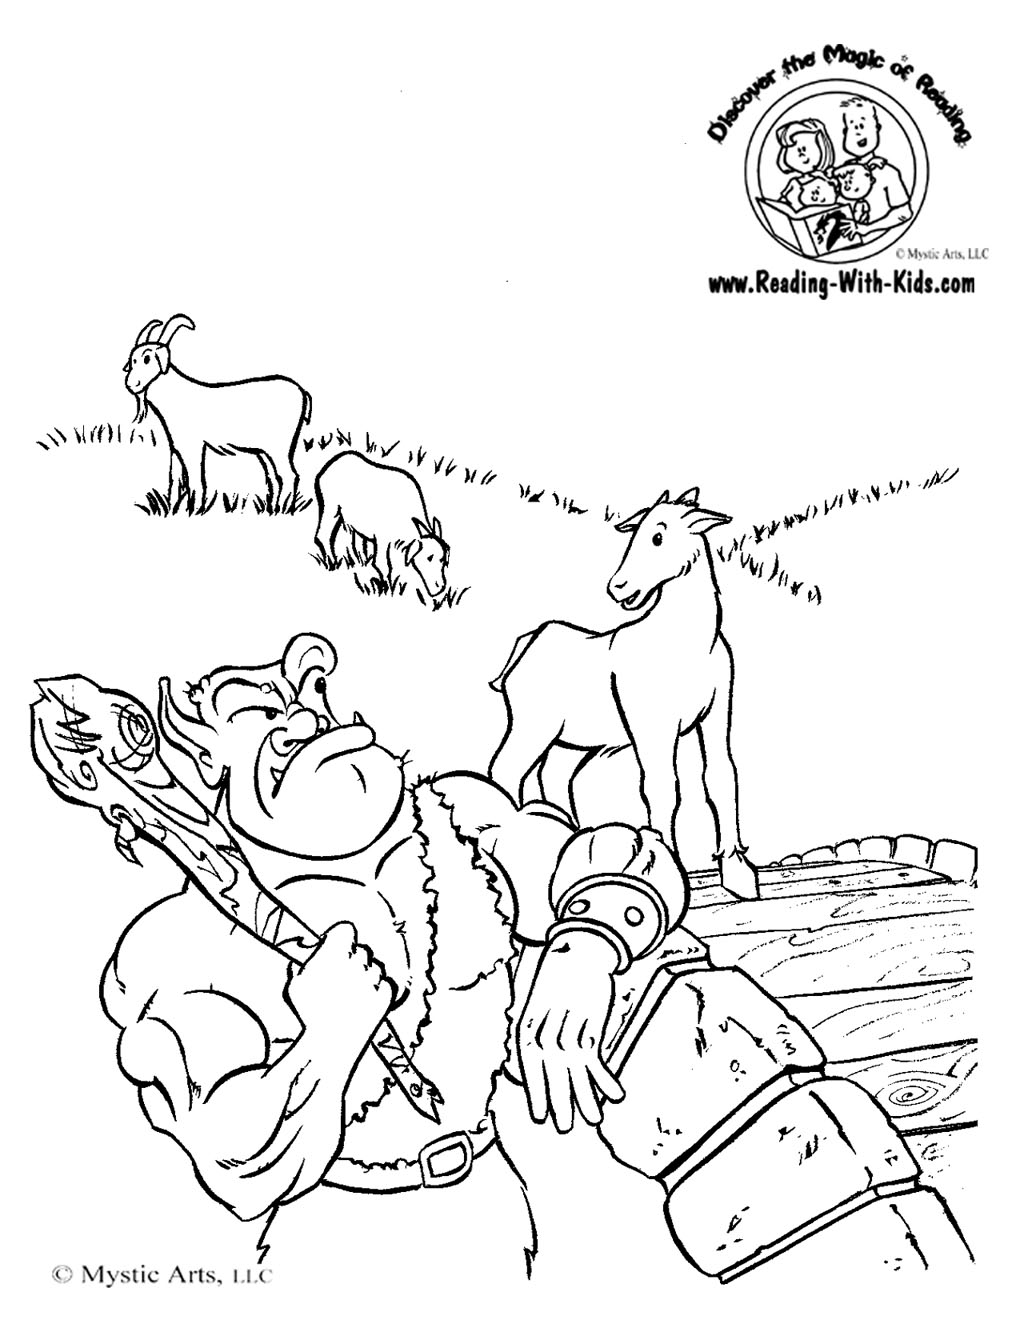 Free Coloring Pages Of Billy Goat Gruff Troll Three Billy Goats Gruff Coloring Pages